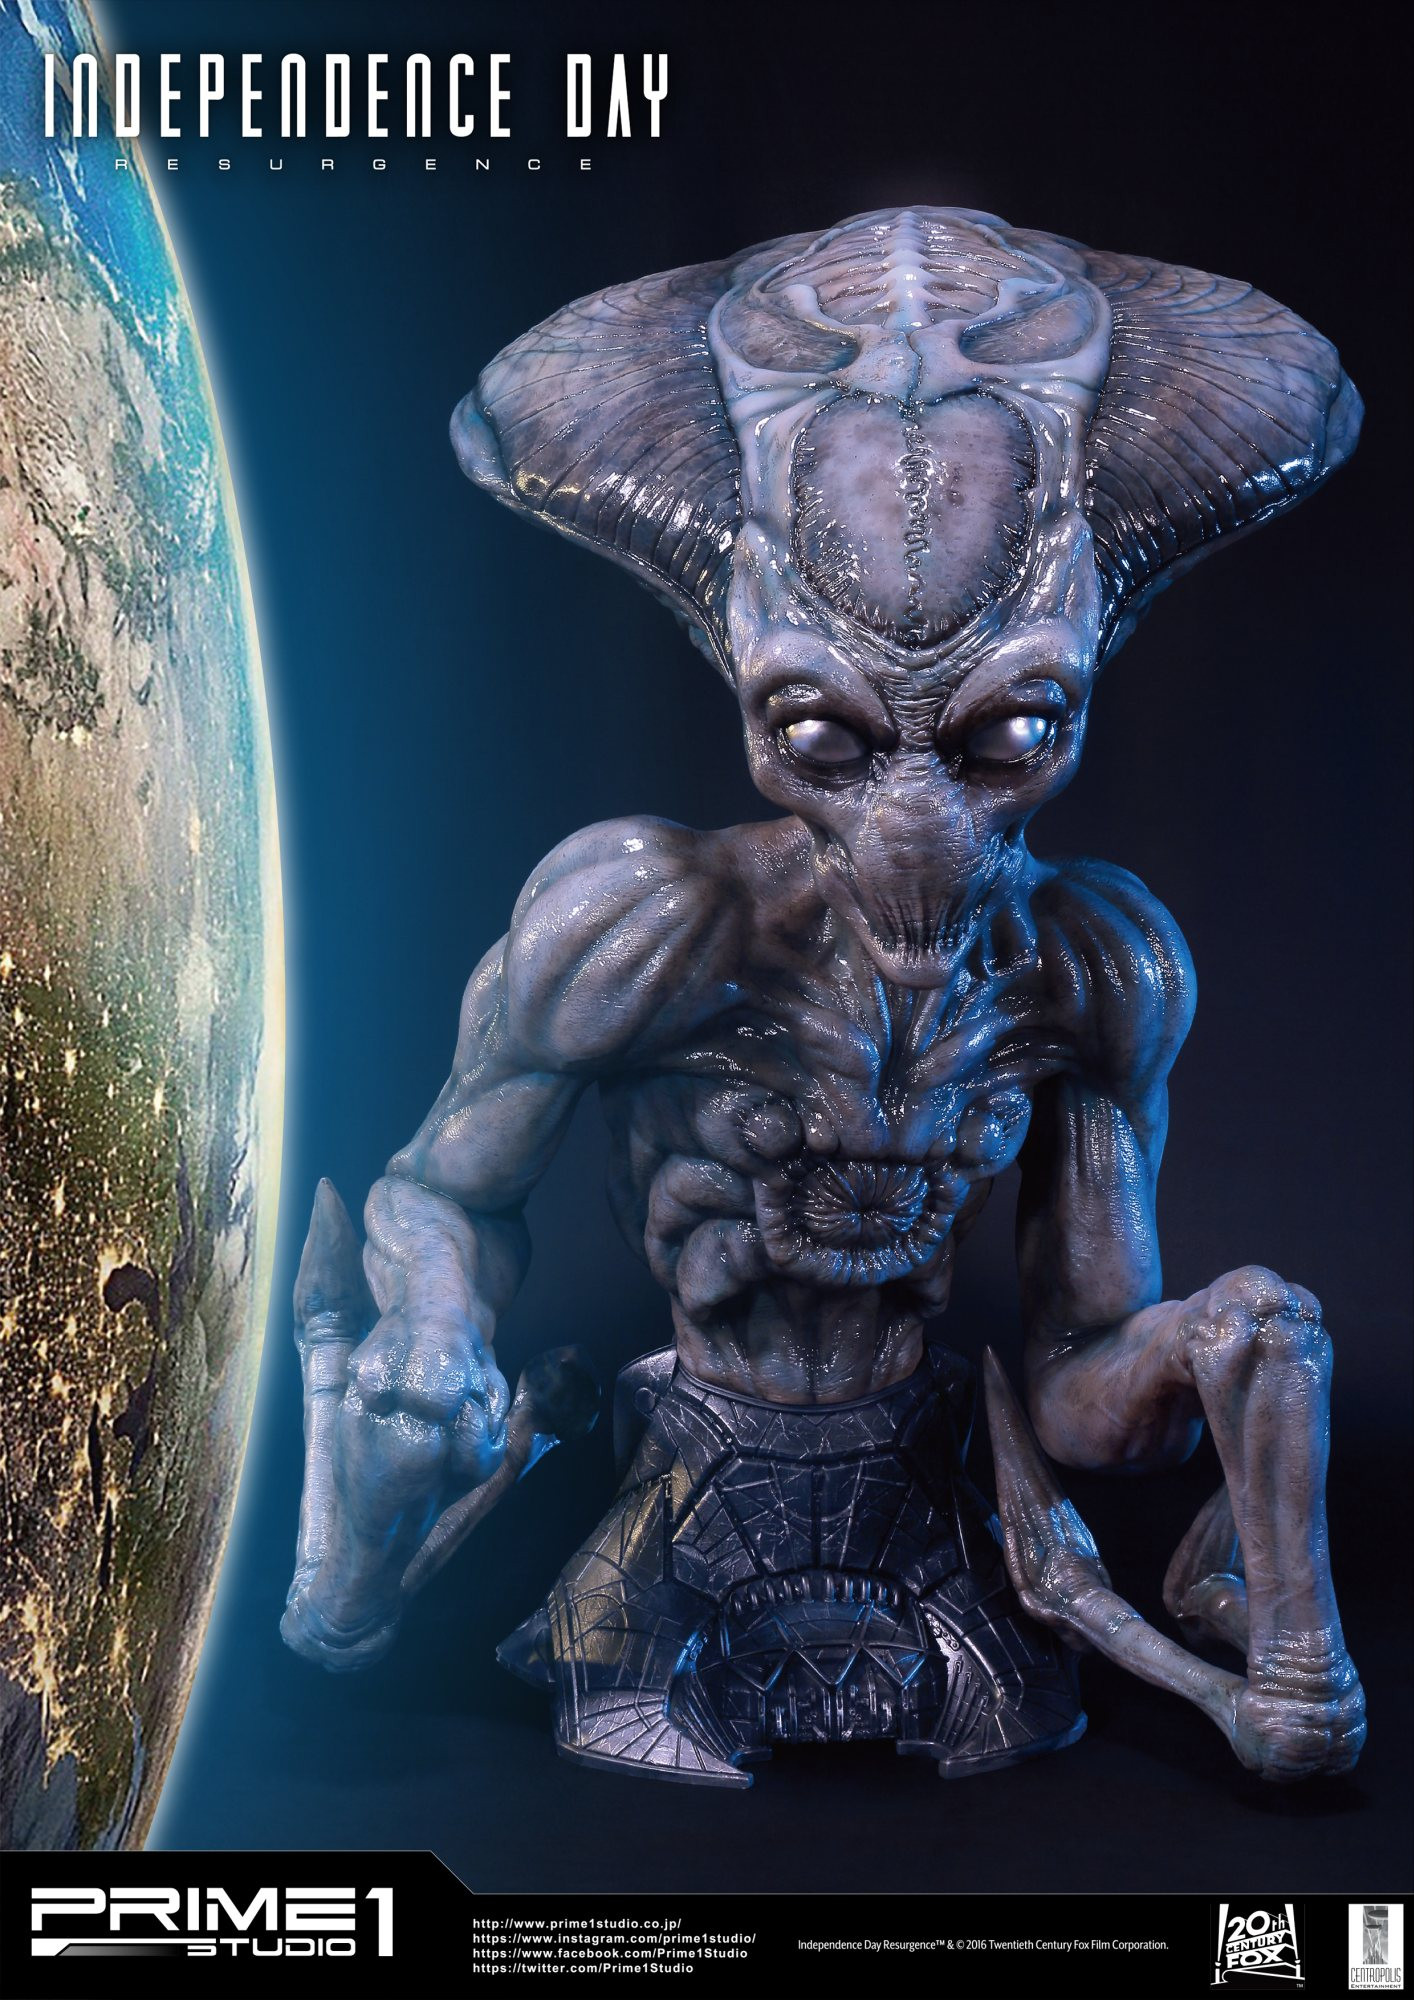 Life Size Independence Day: Resurgence (Film) Alien By ...